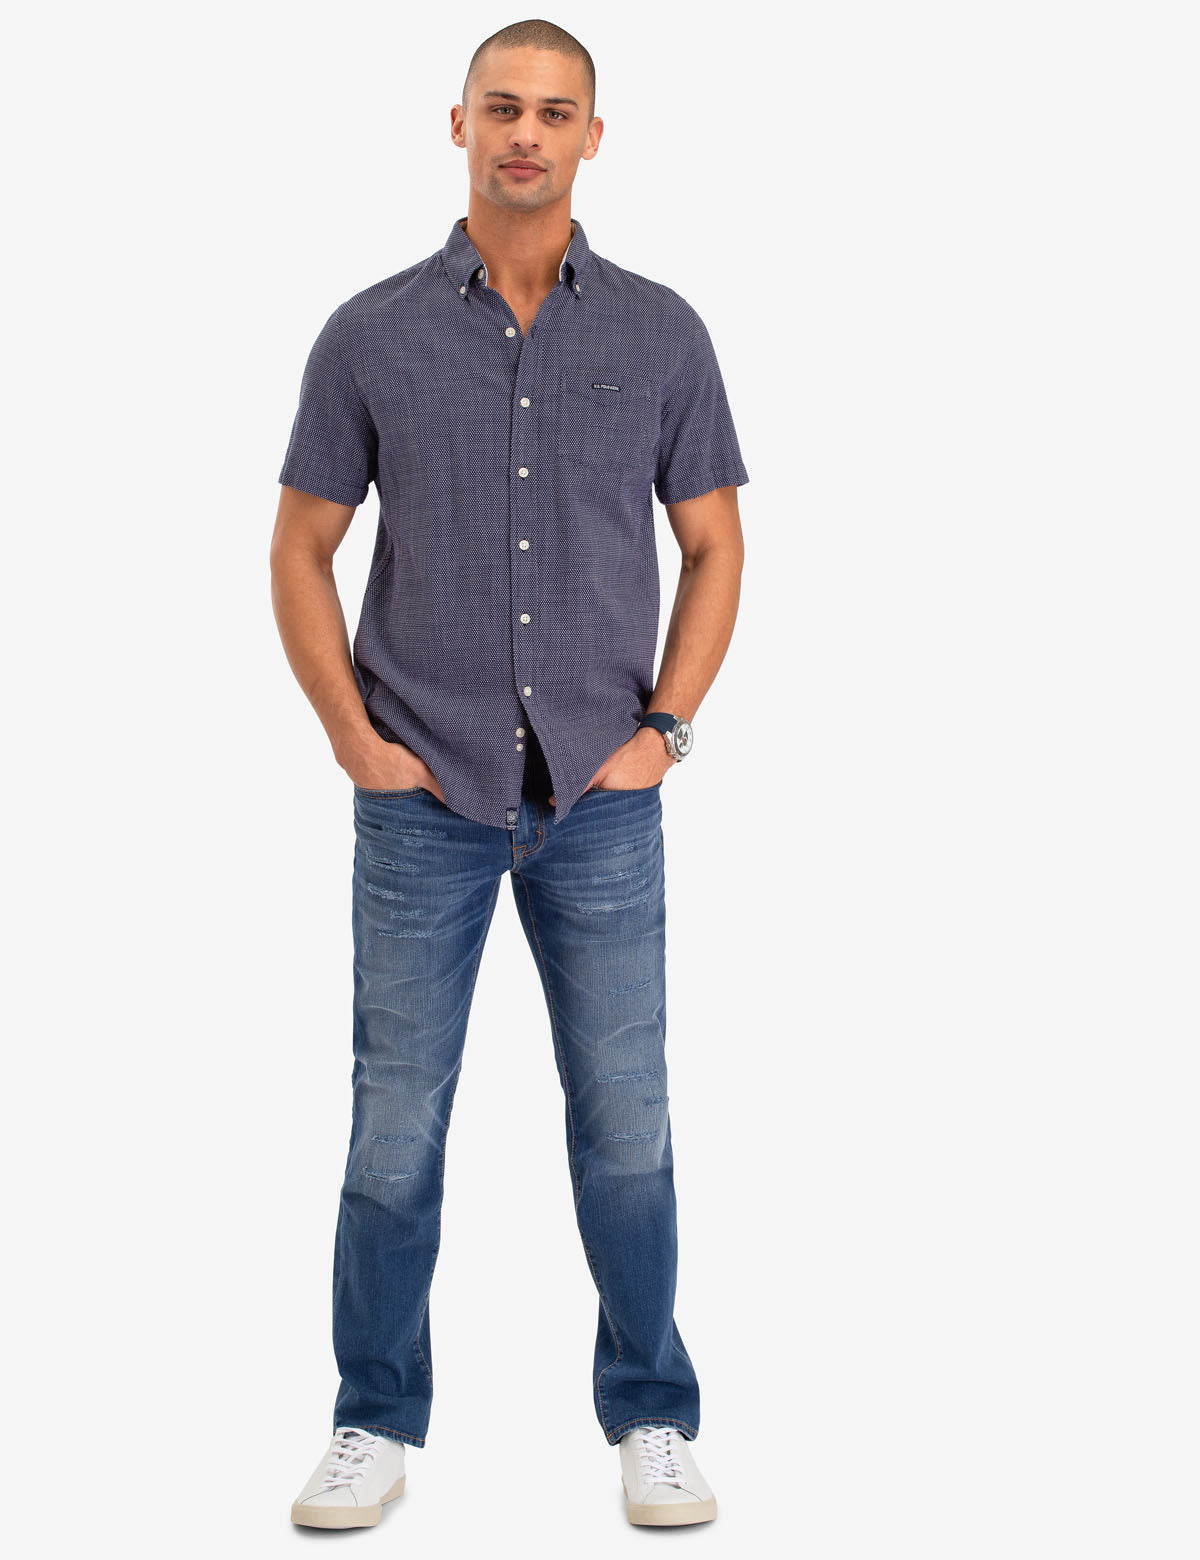 PLAID DOBBY SHORT SLEEVE SHIRT - U.S. Polo Assn.